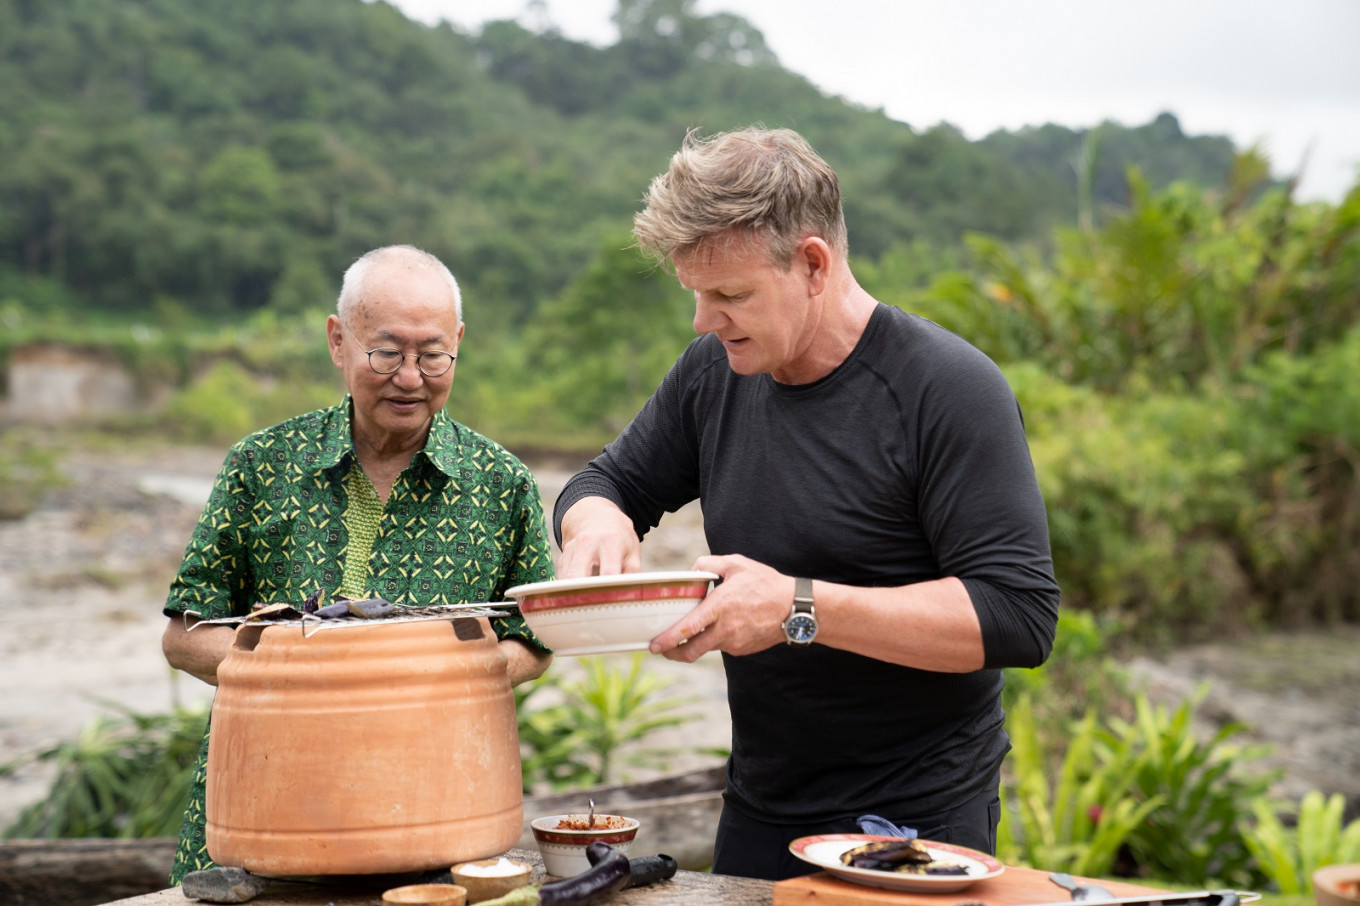 Gordon Ramsay 'can't wait' to put beef 'rendang' on his restaurant's menu